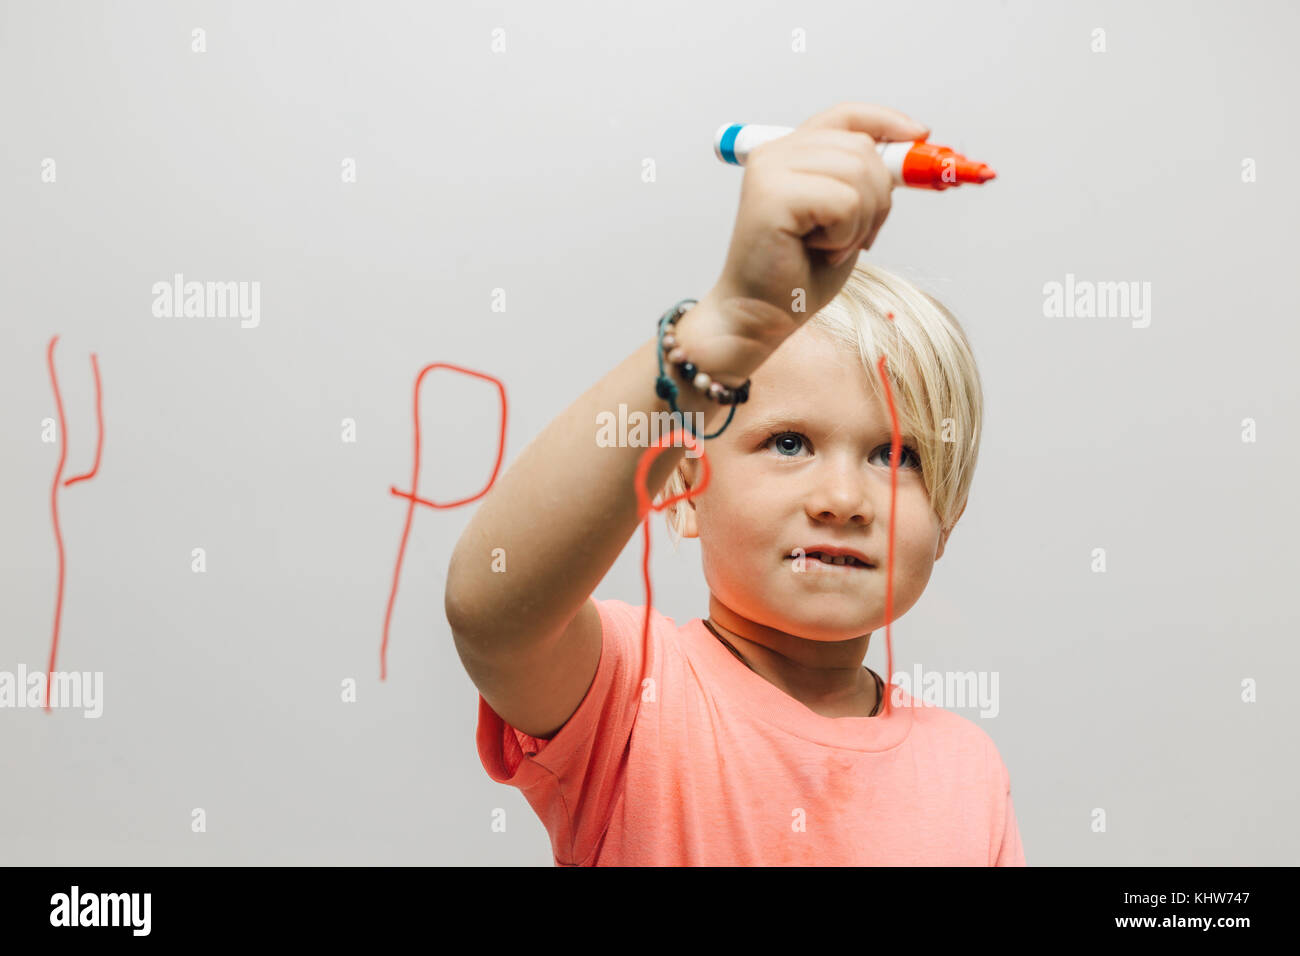 Boy writing reversed letter P onto glass wall - Stock Image